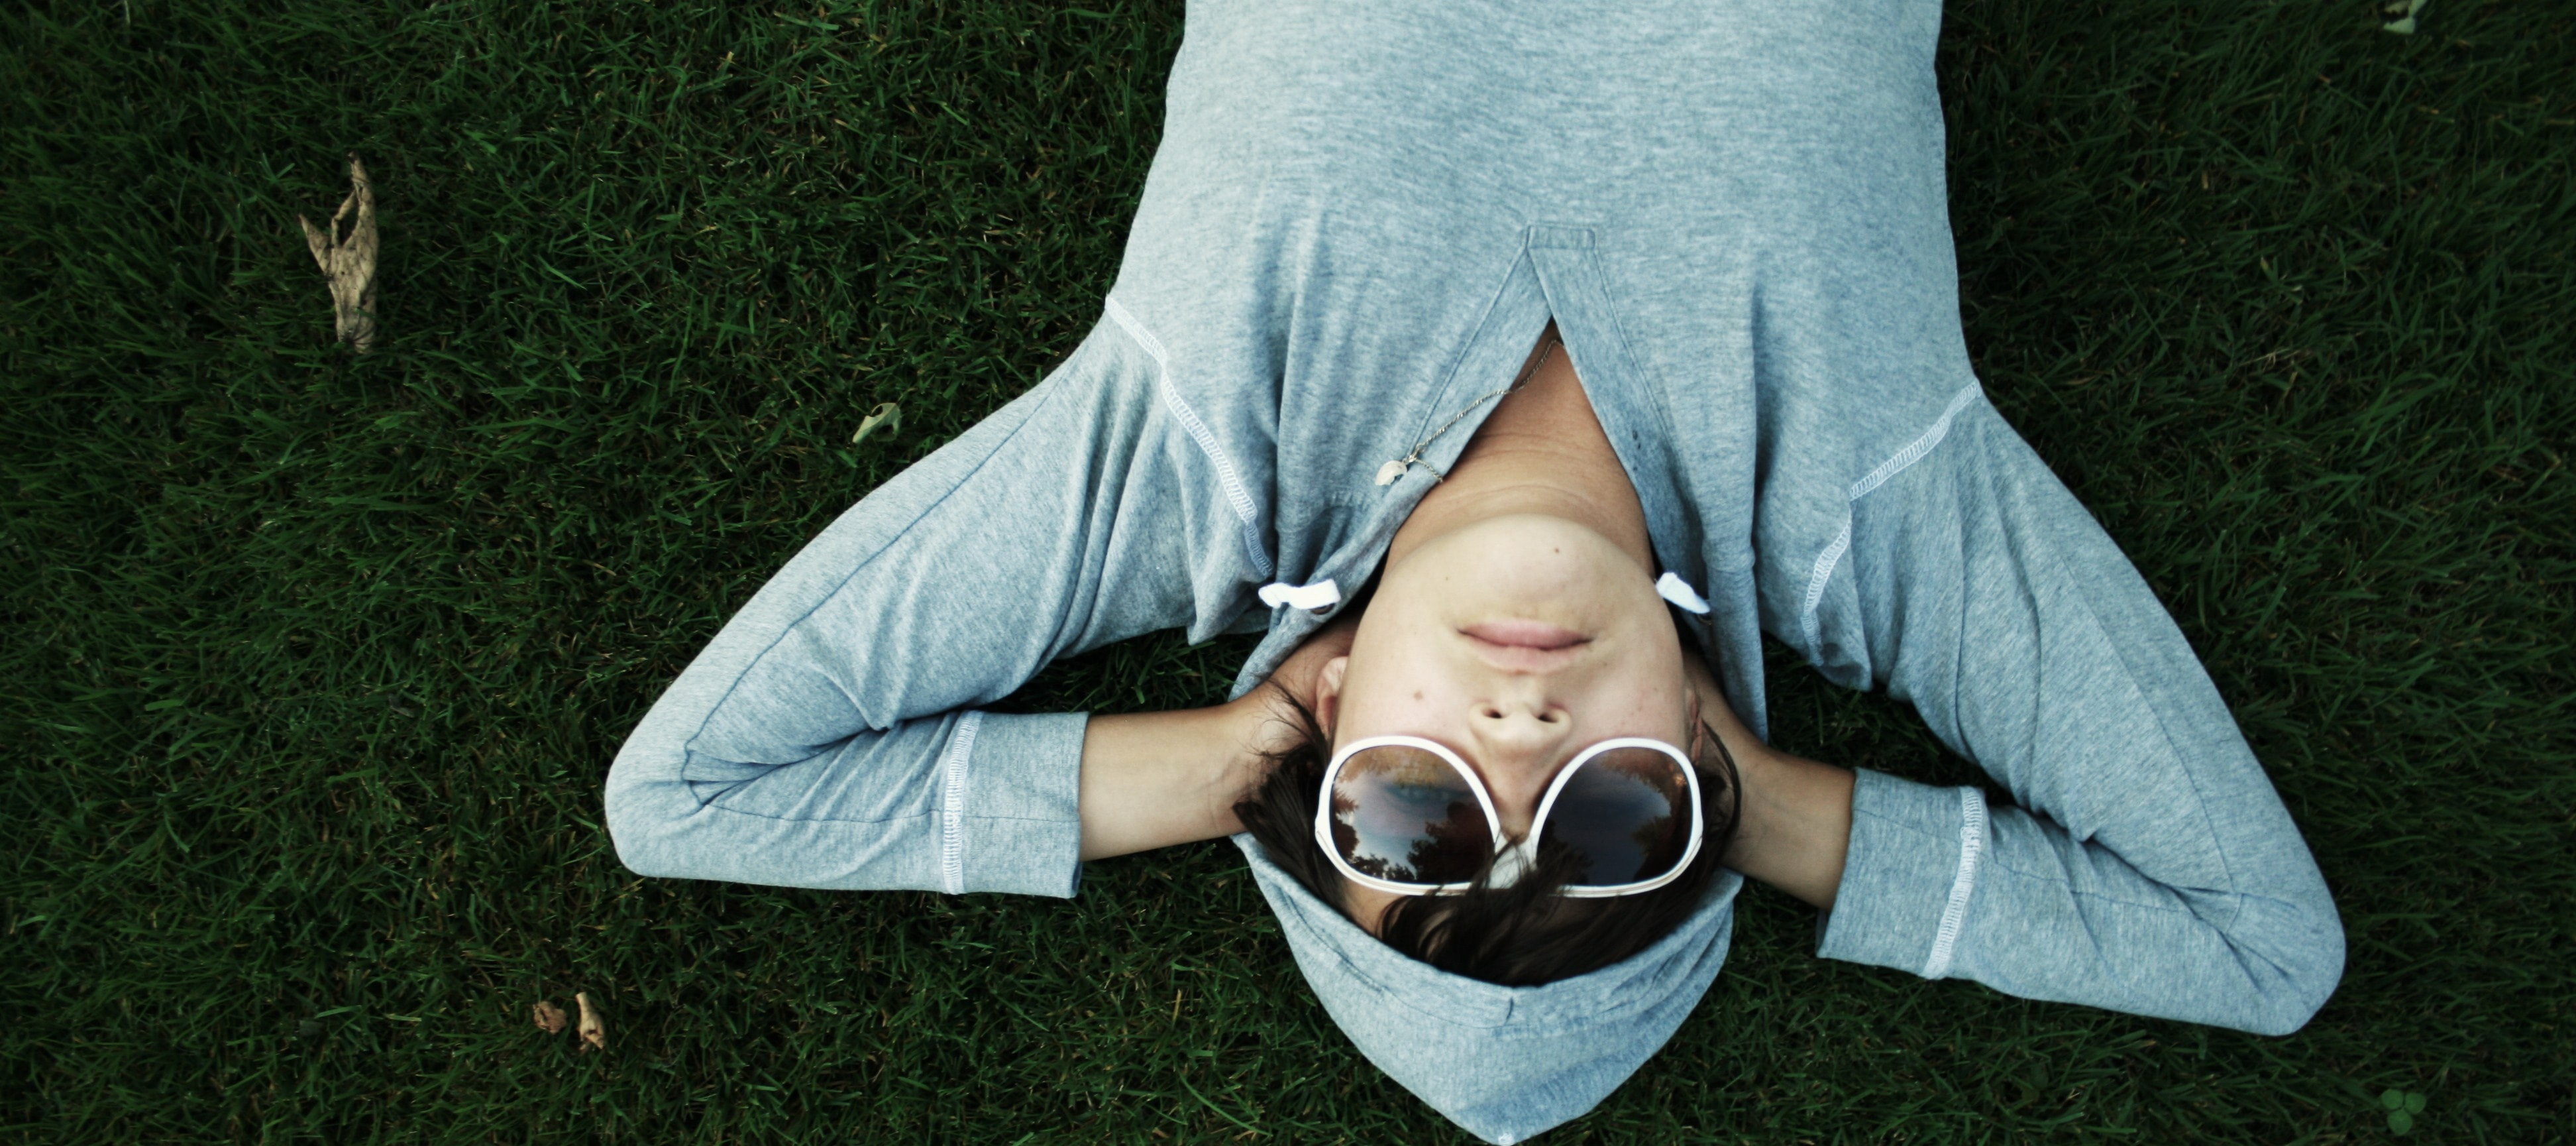 A person in dark glasses and a gray hoodie lying relaxed on green grass